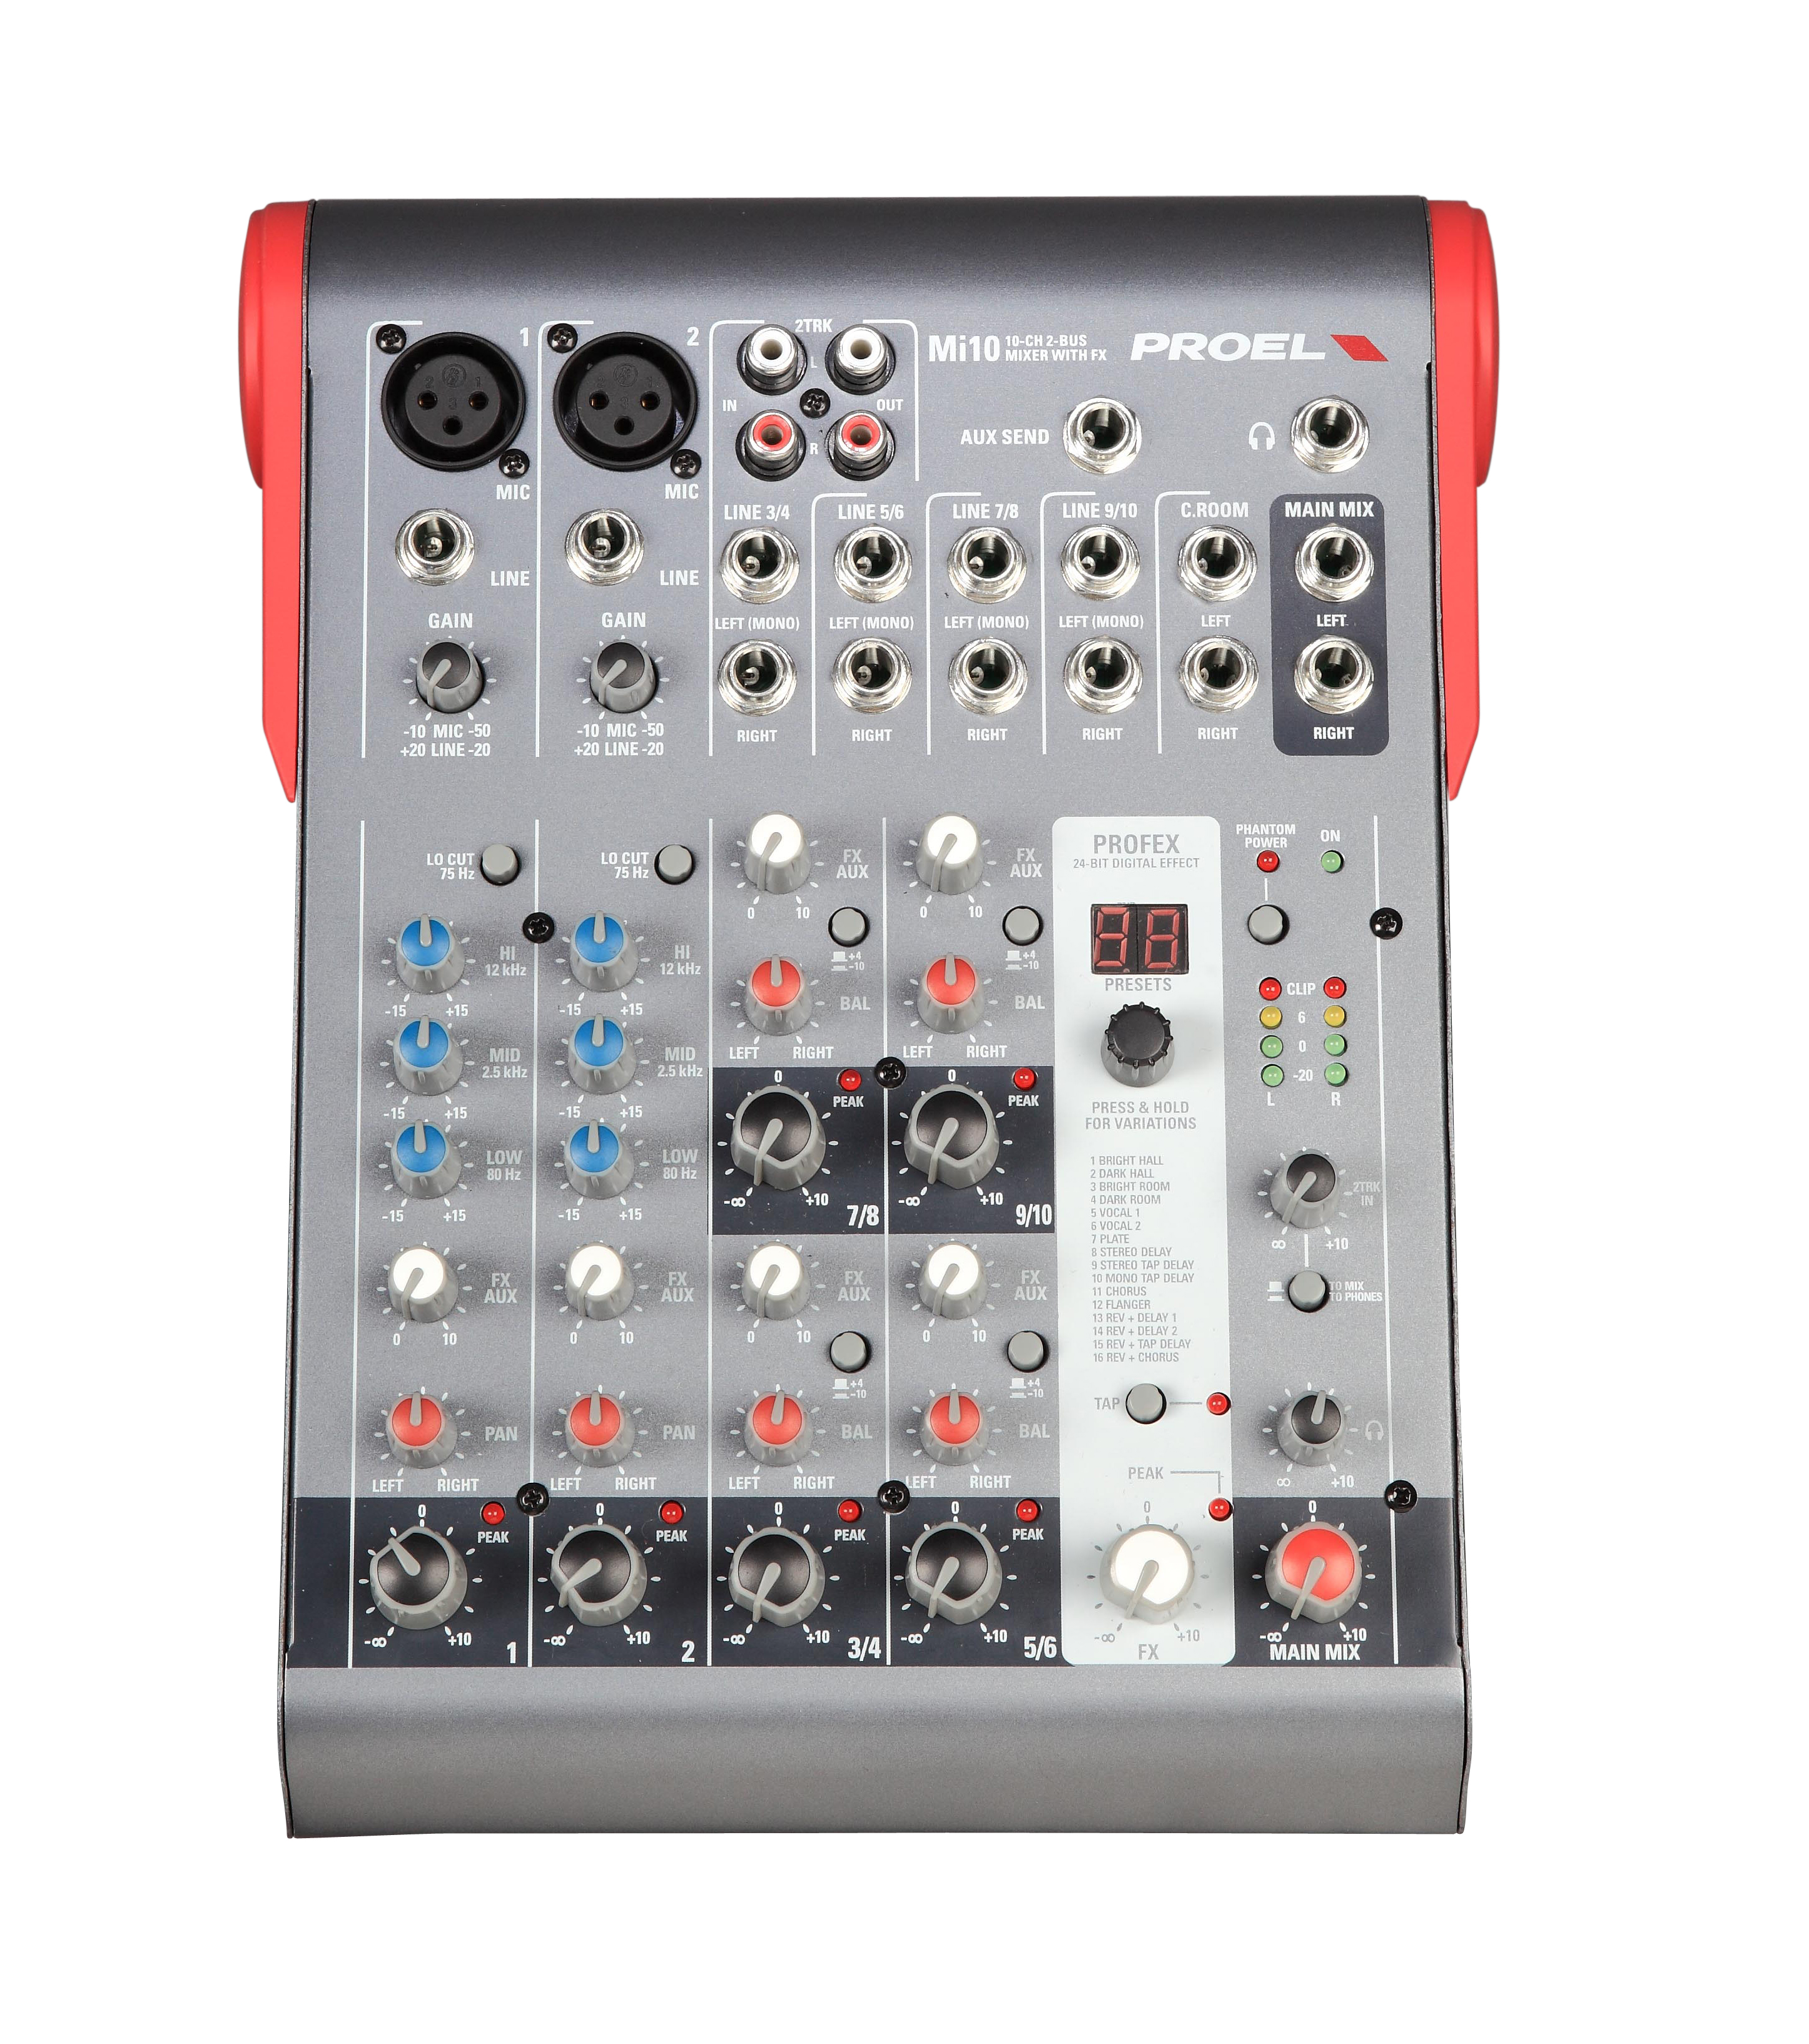 Uitlopend - Proel Mixer 2mic/Line. 4st. Line inputs. 1Aux. 24bit 256 effects, 2track out. Bal.Main mix out.